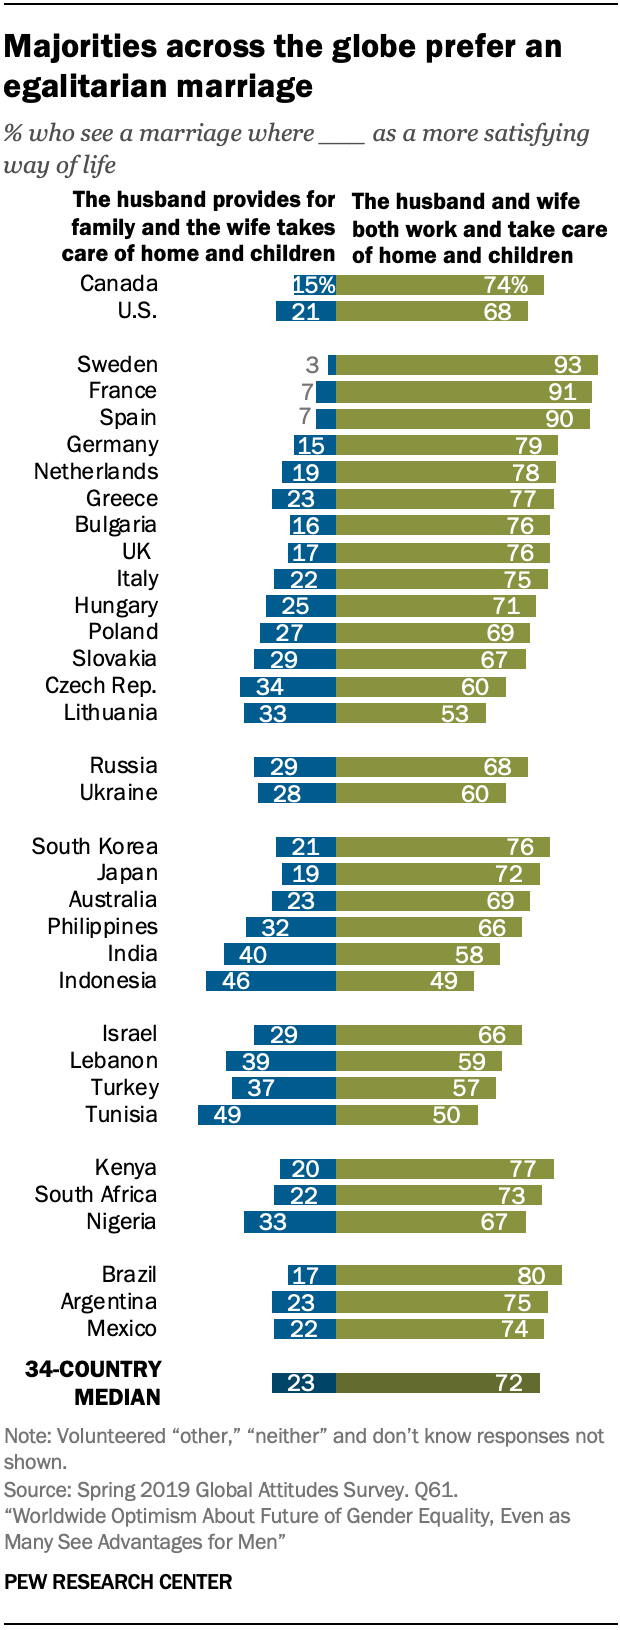 Majorities across the globe prefer an egalitarian marriage